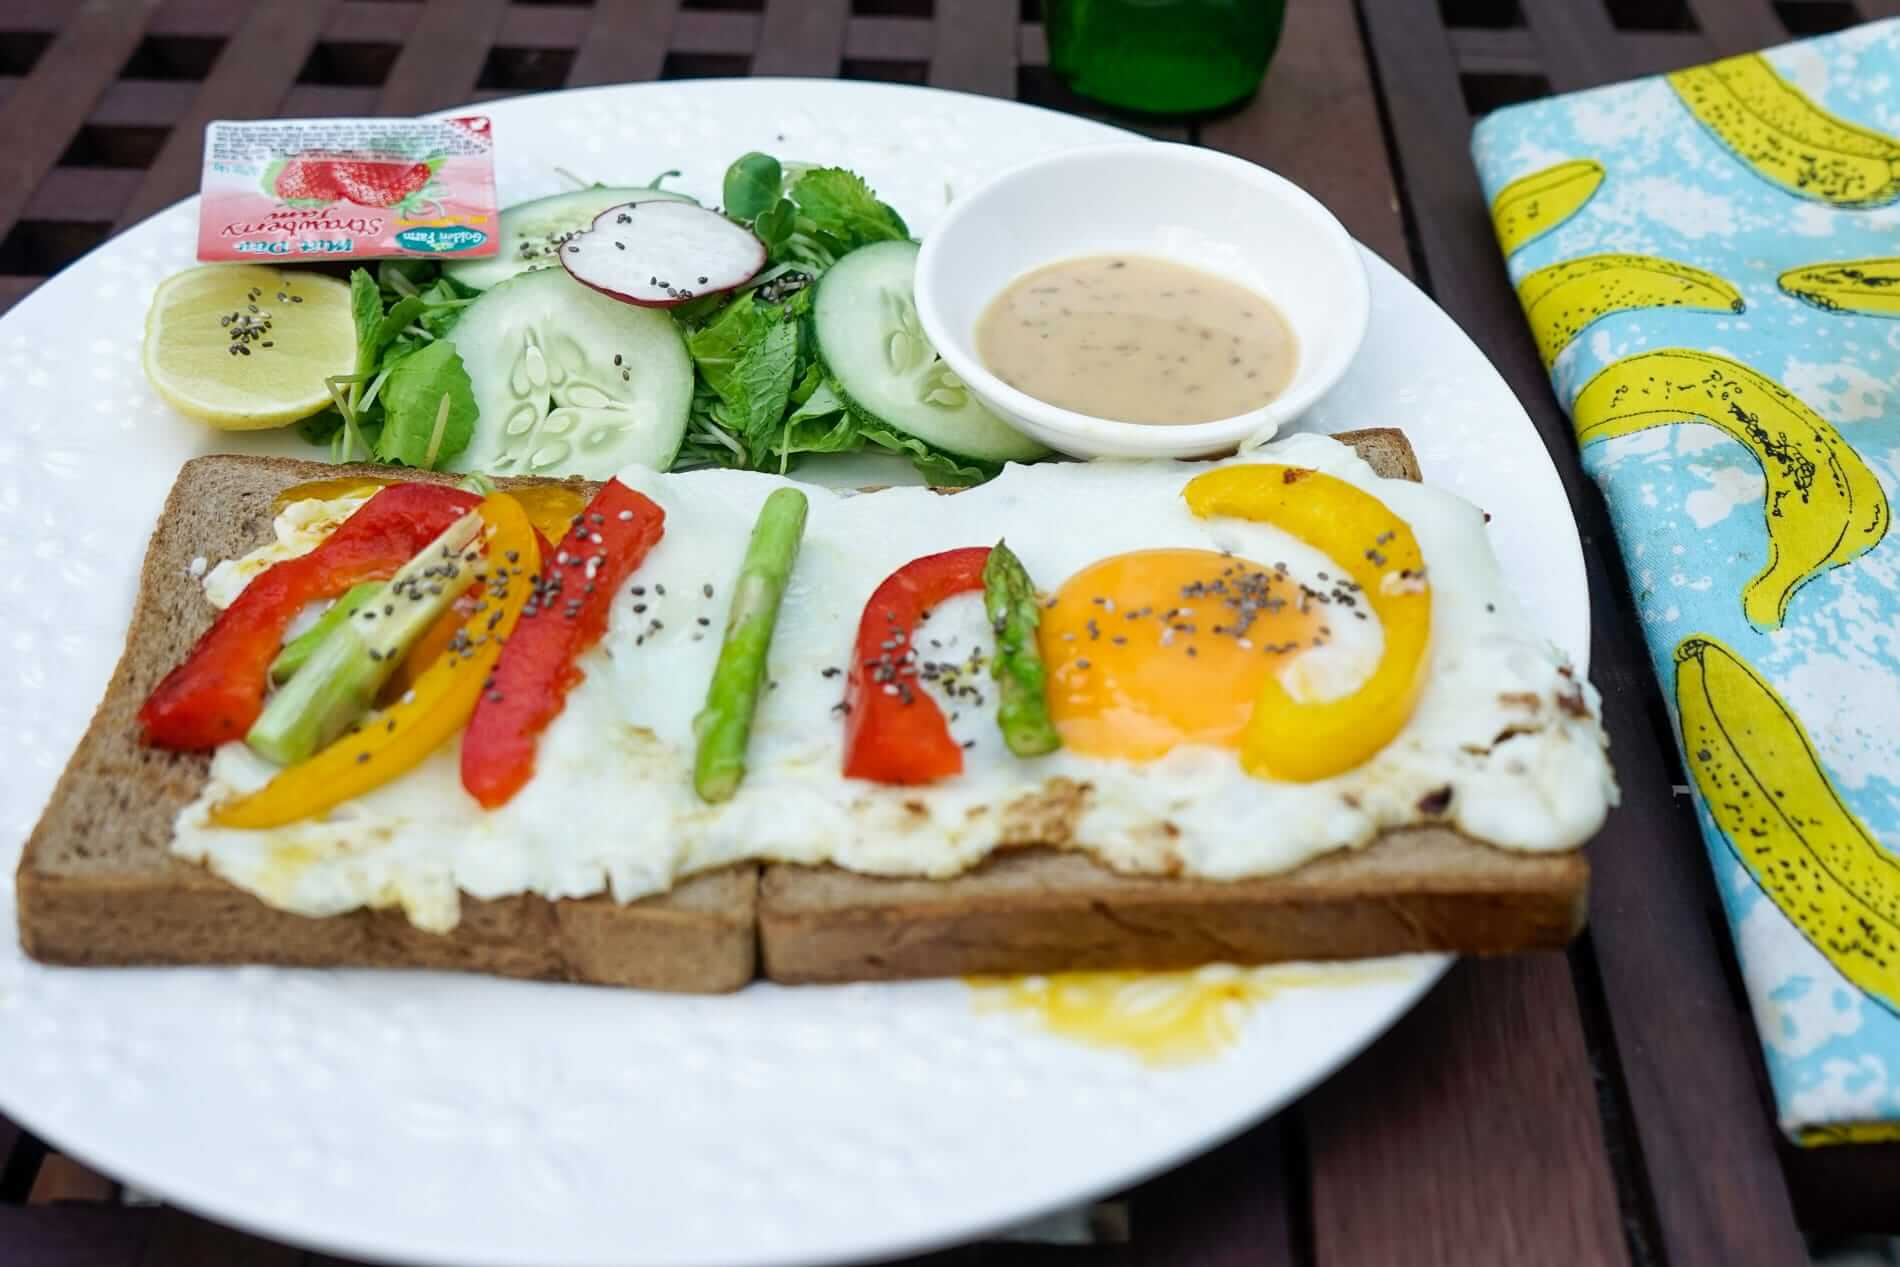 Plate of eggs and grilled vegetables